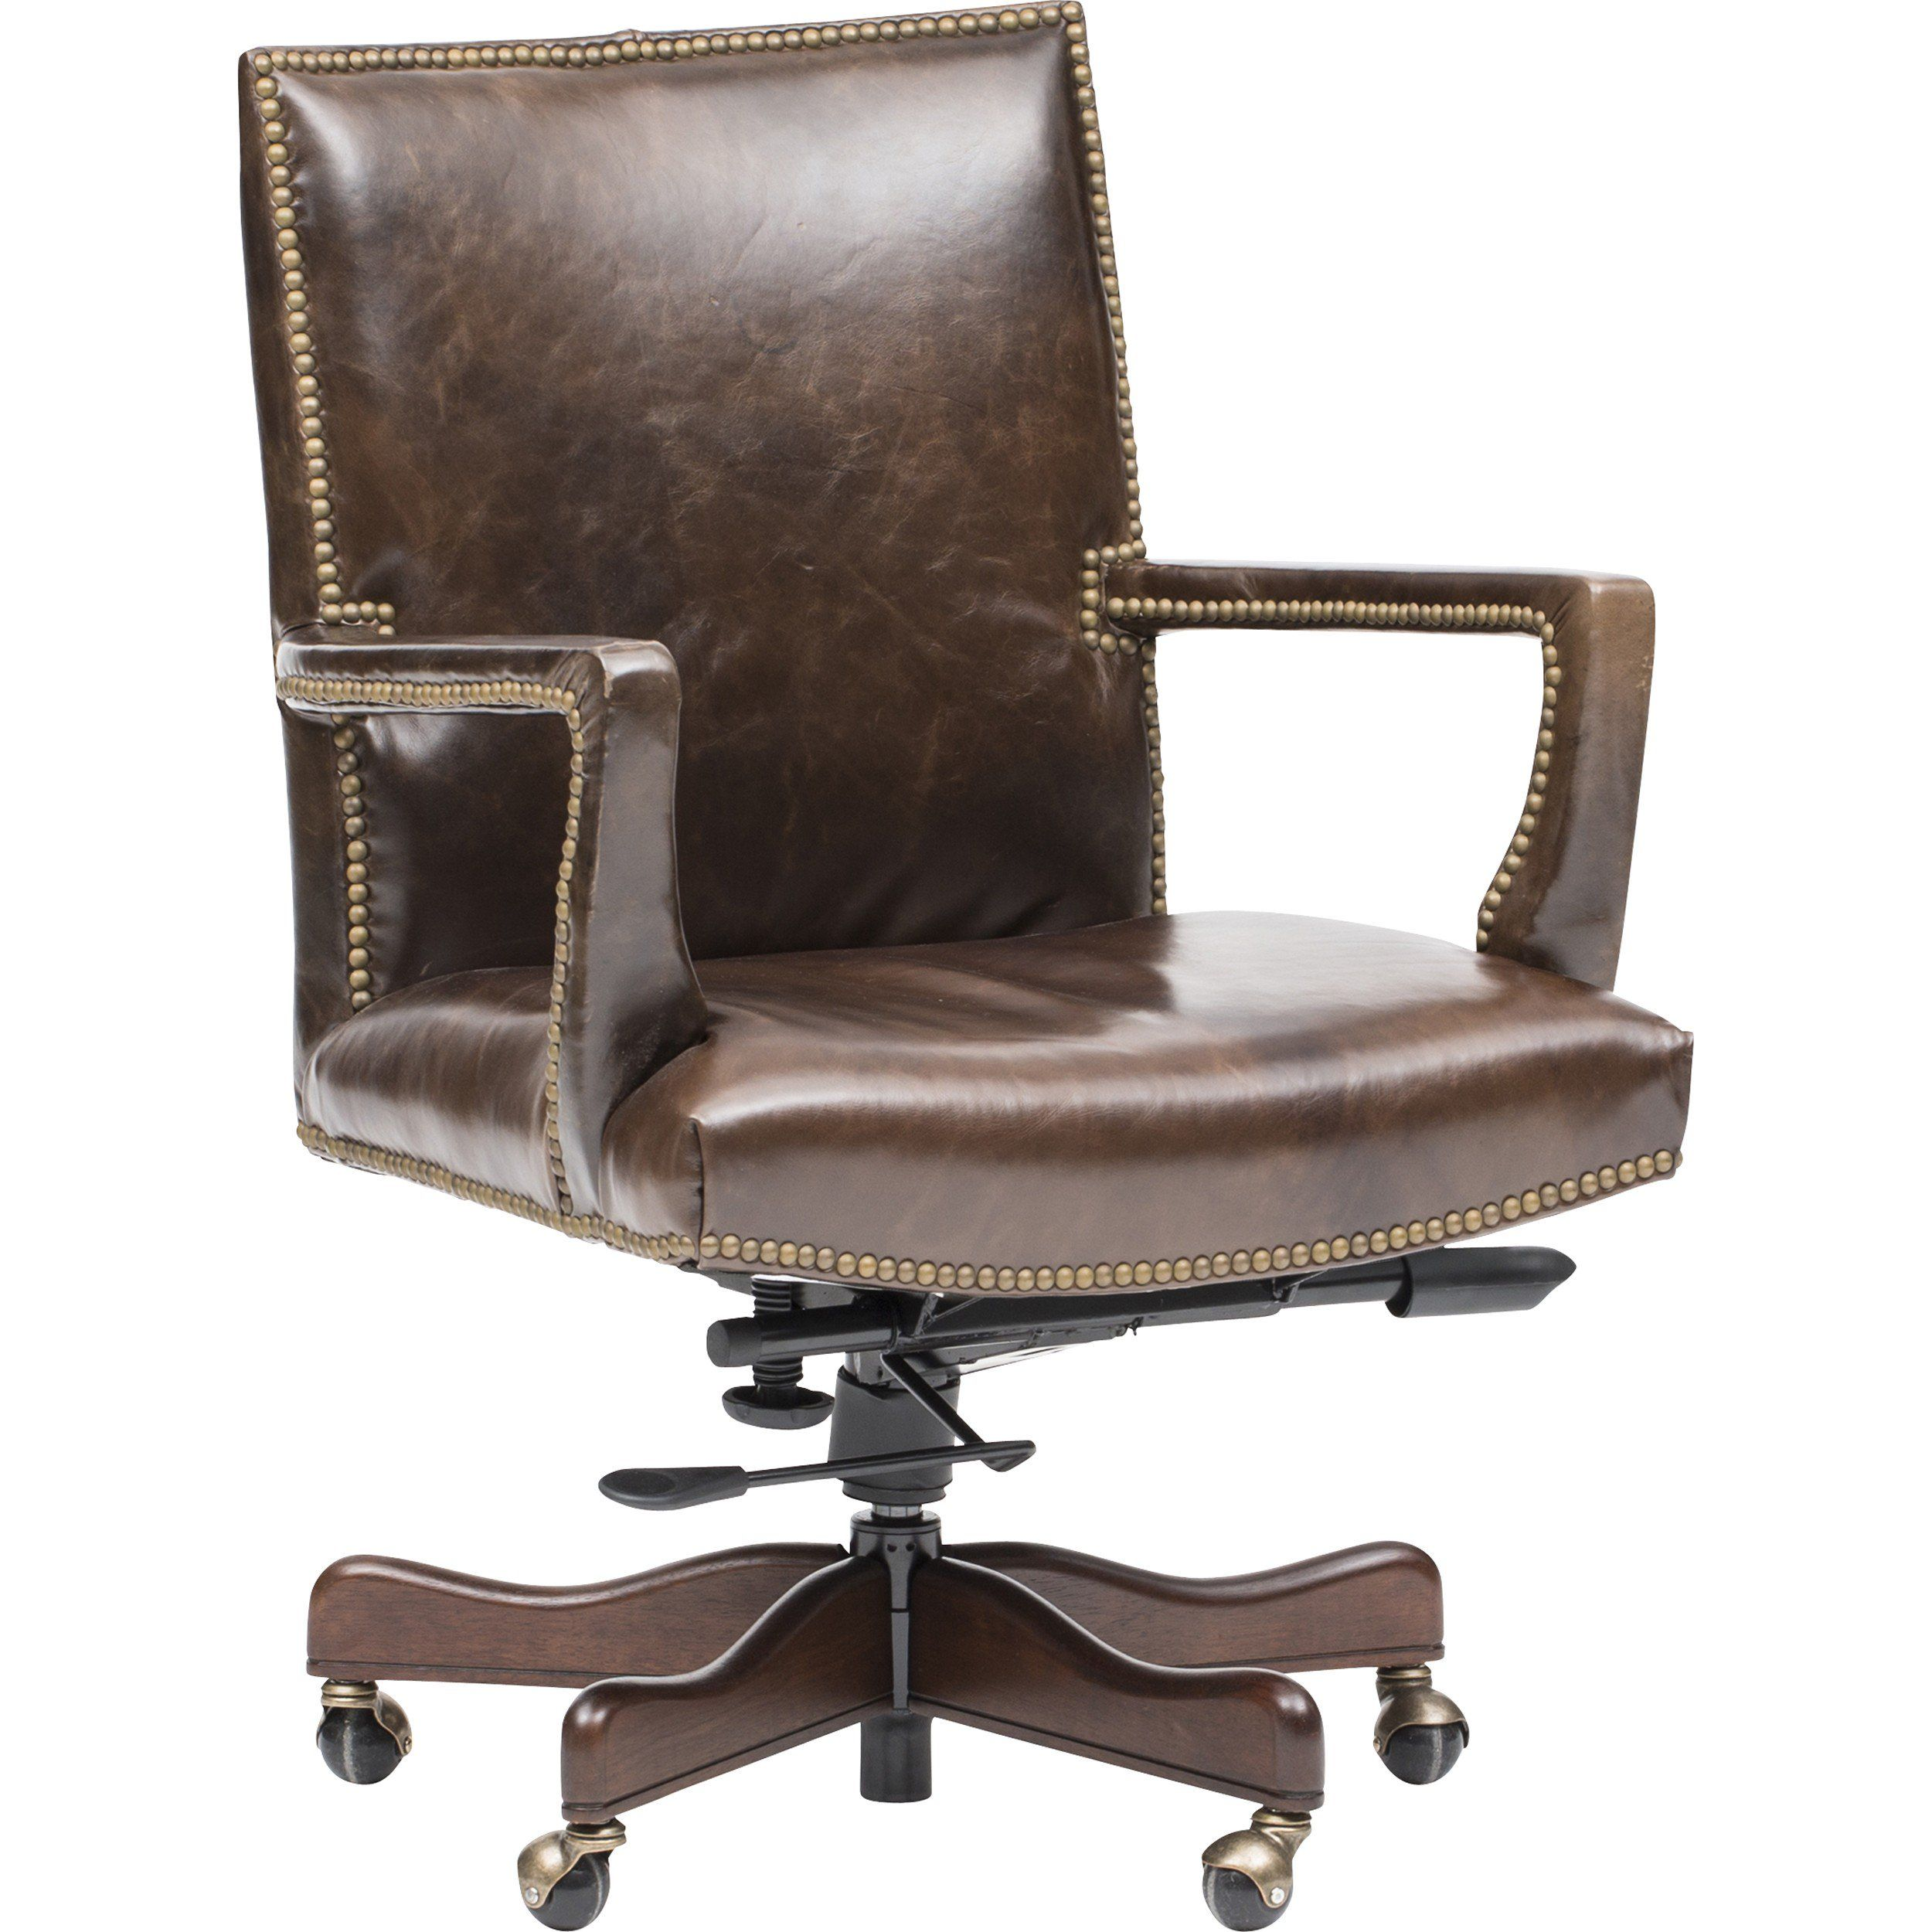 frank executive leather office chair | chair, wooden ...